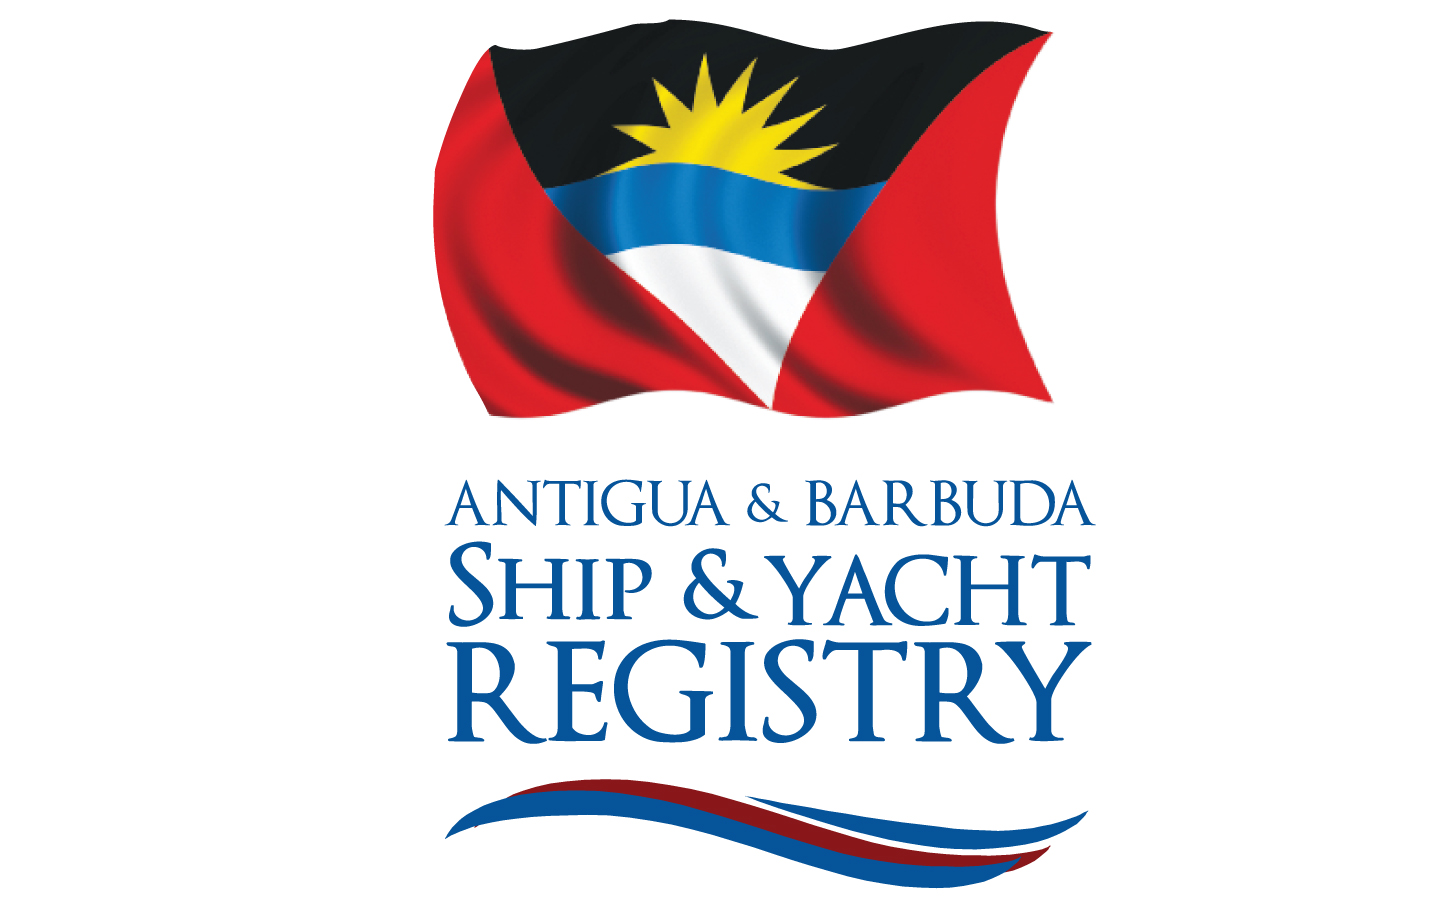 Antigua and Barbuda Department Of Marine Services and Merchant Shipping (ADOMS)